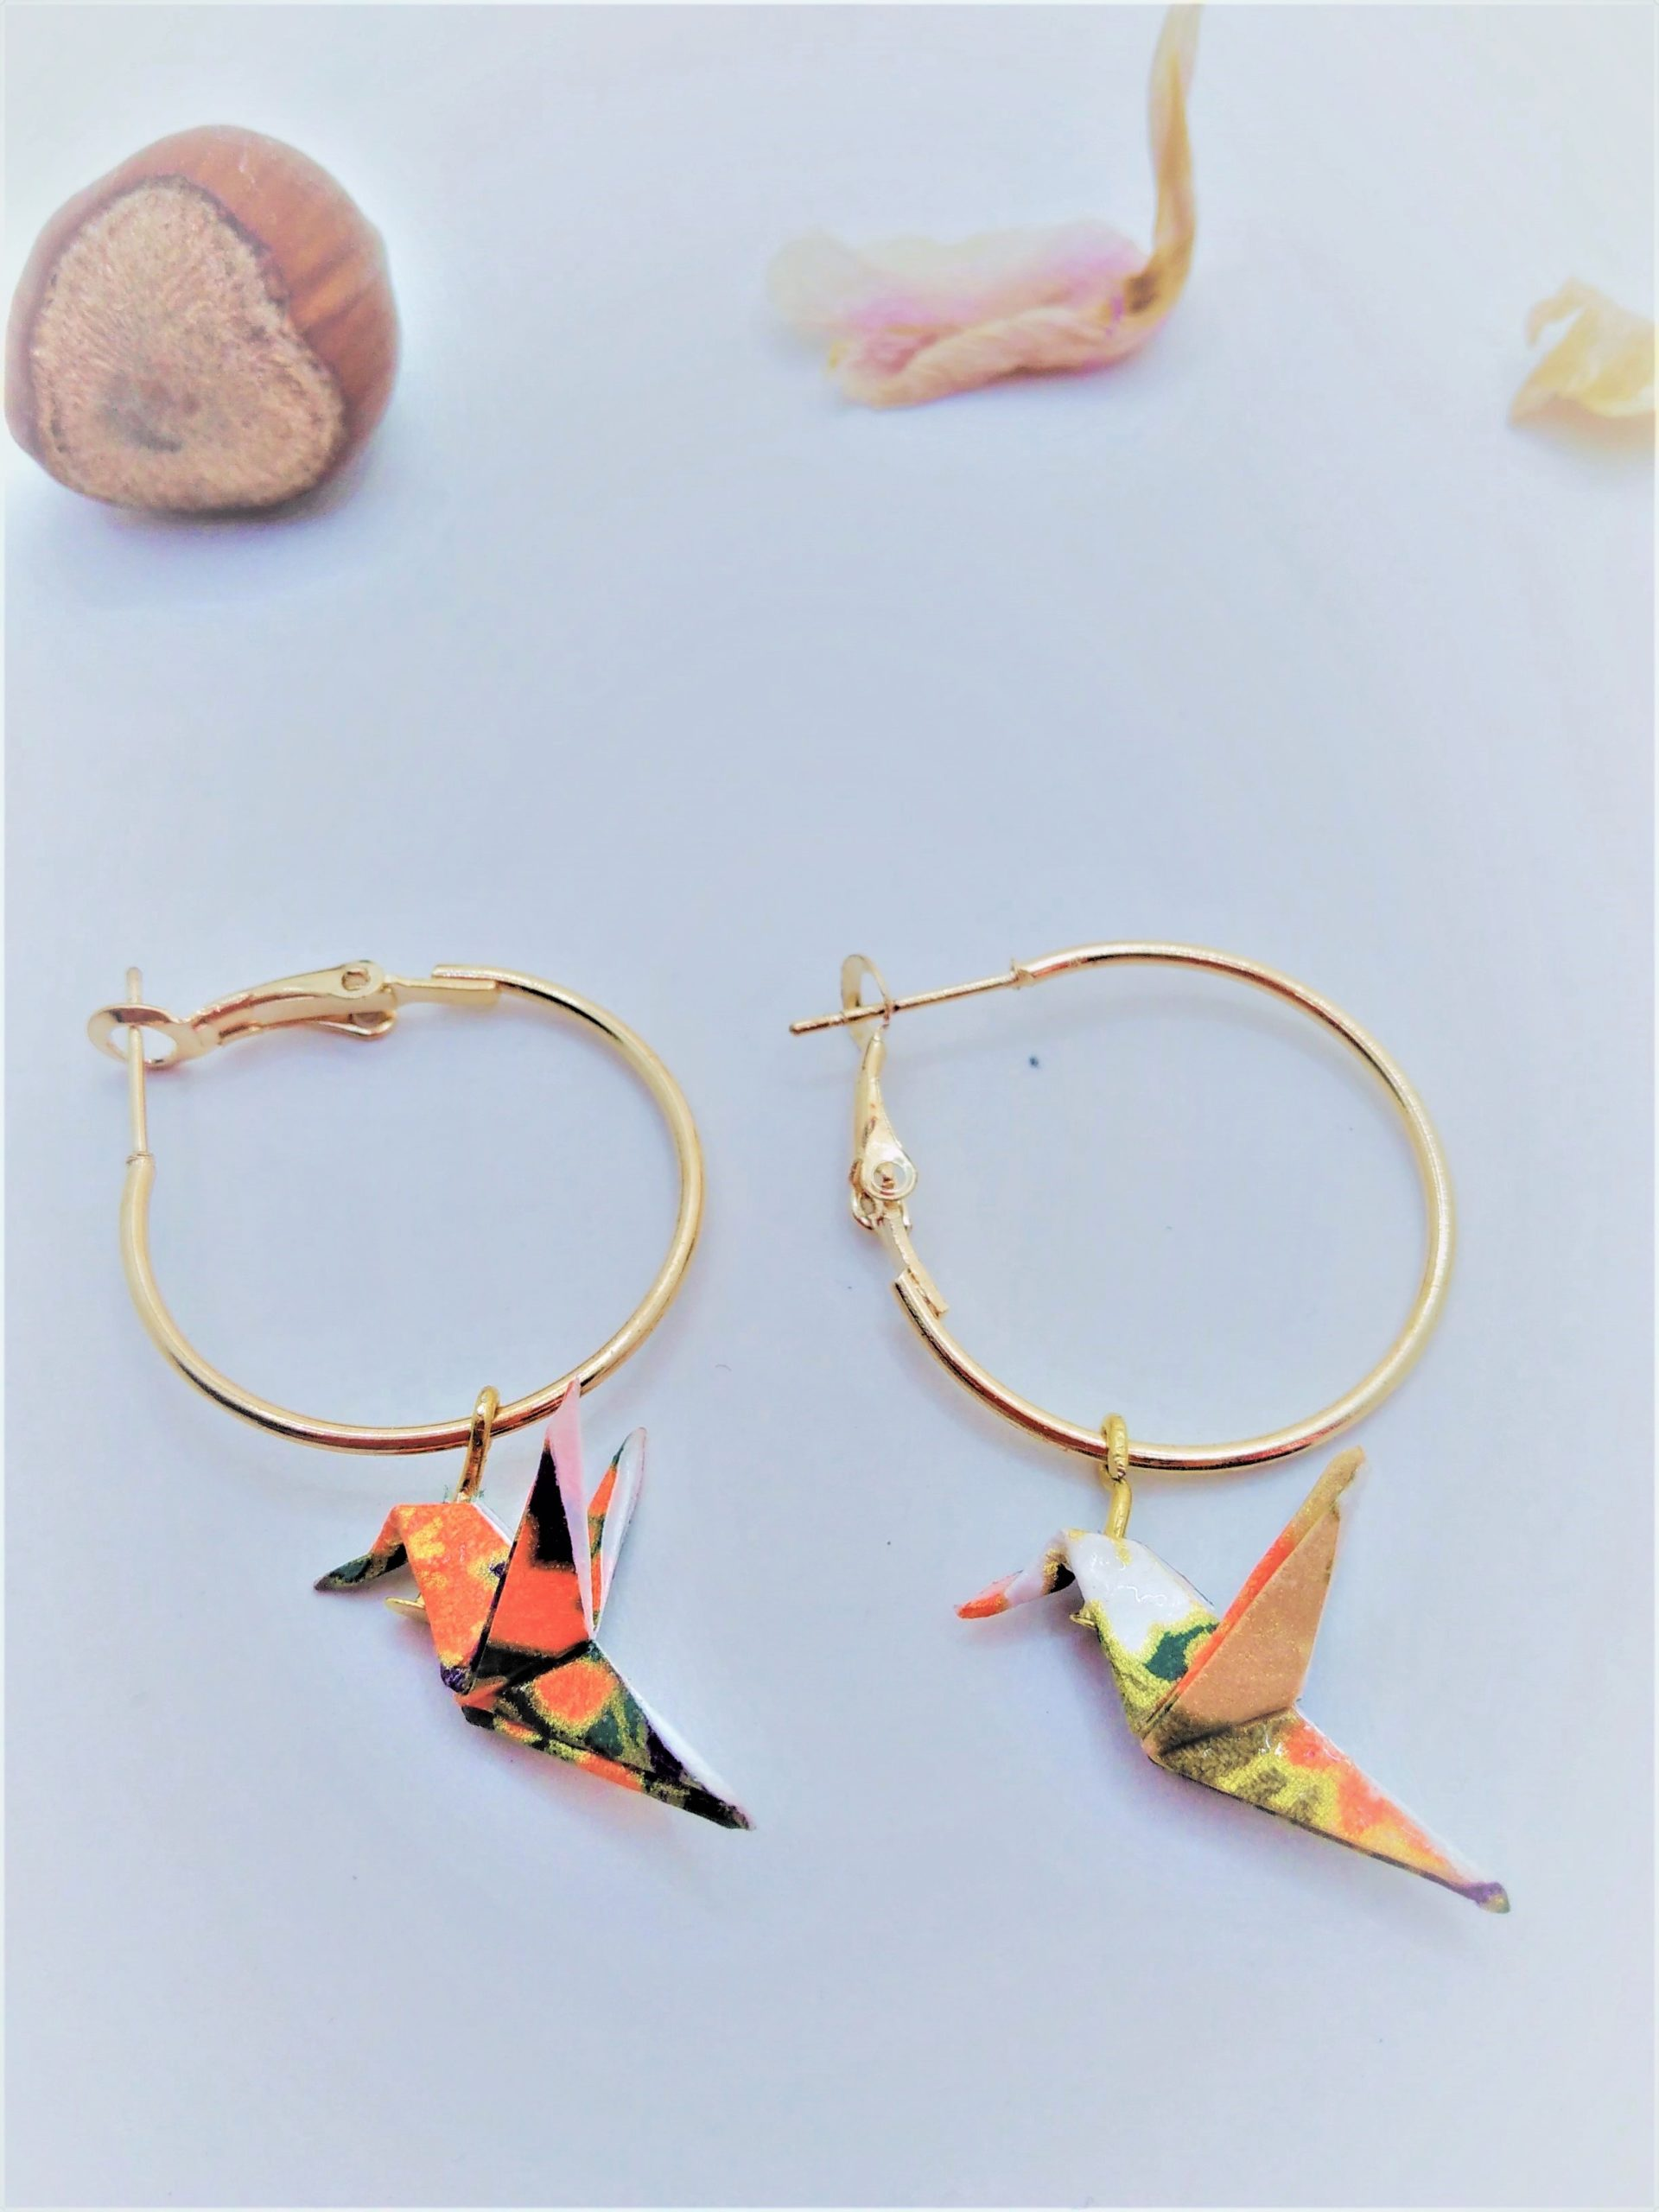 BOOco11 - 20€ - Boucles d'Oreilles Origami colombe - Indisponible